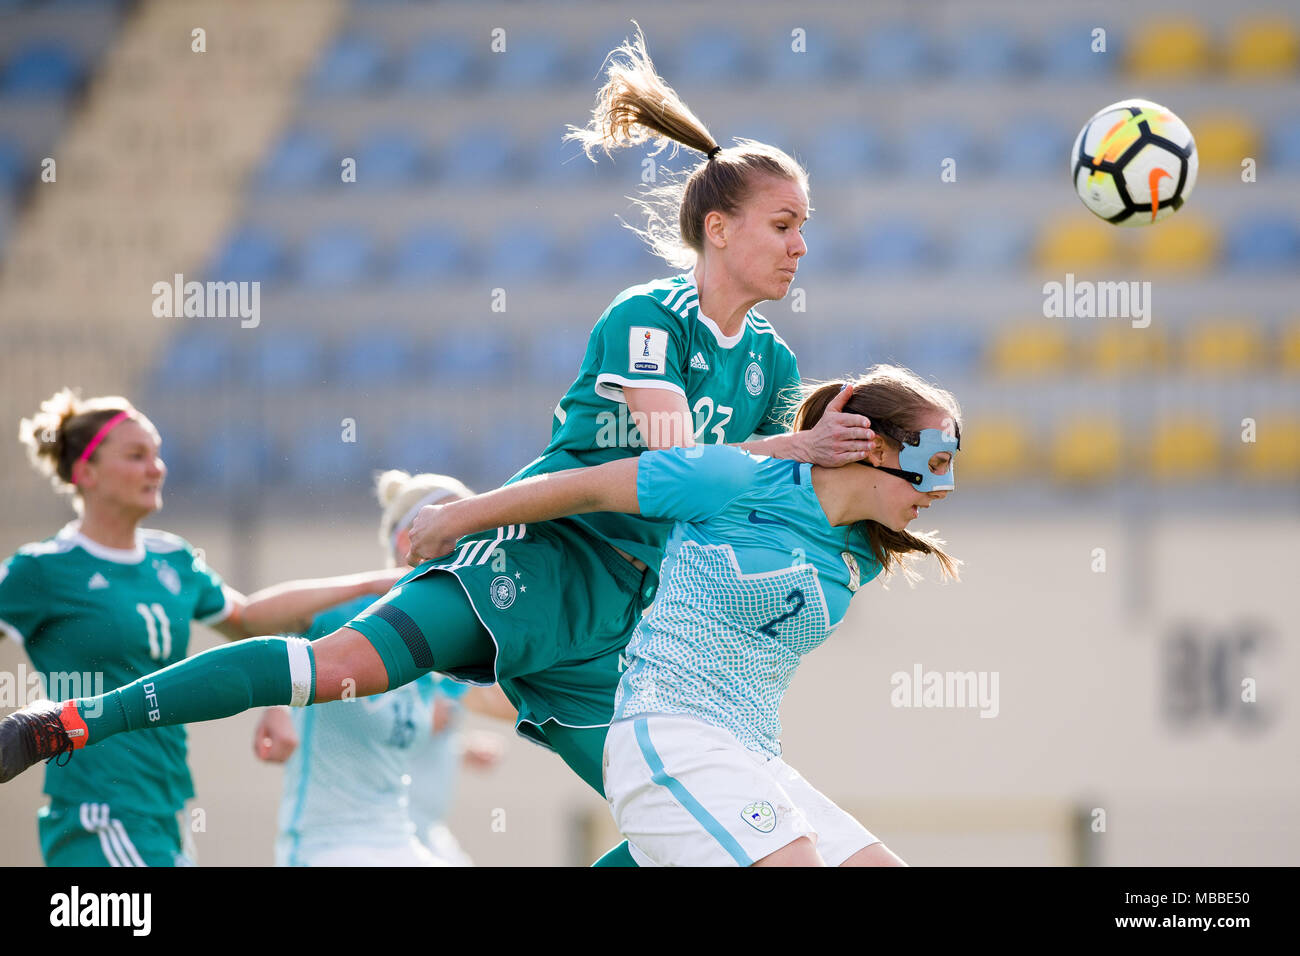 Popular Europe World Cup 2018 - 10-april-2018-slovenia-domzale-soccer-womens-world-cup-qualification-europe-group-stages-slovenia-vs-germany-germanys-lena-petermann-c-and-slovenias-lana-golob-r-in-action-photo-sasa-pahic-szabodpa-MBBE50  Picture_8583 .jpg